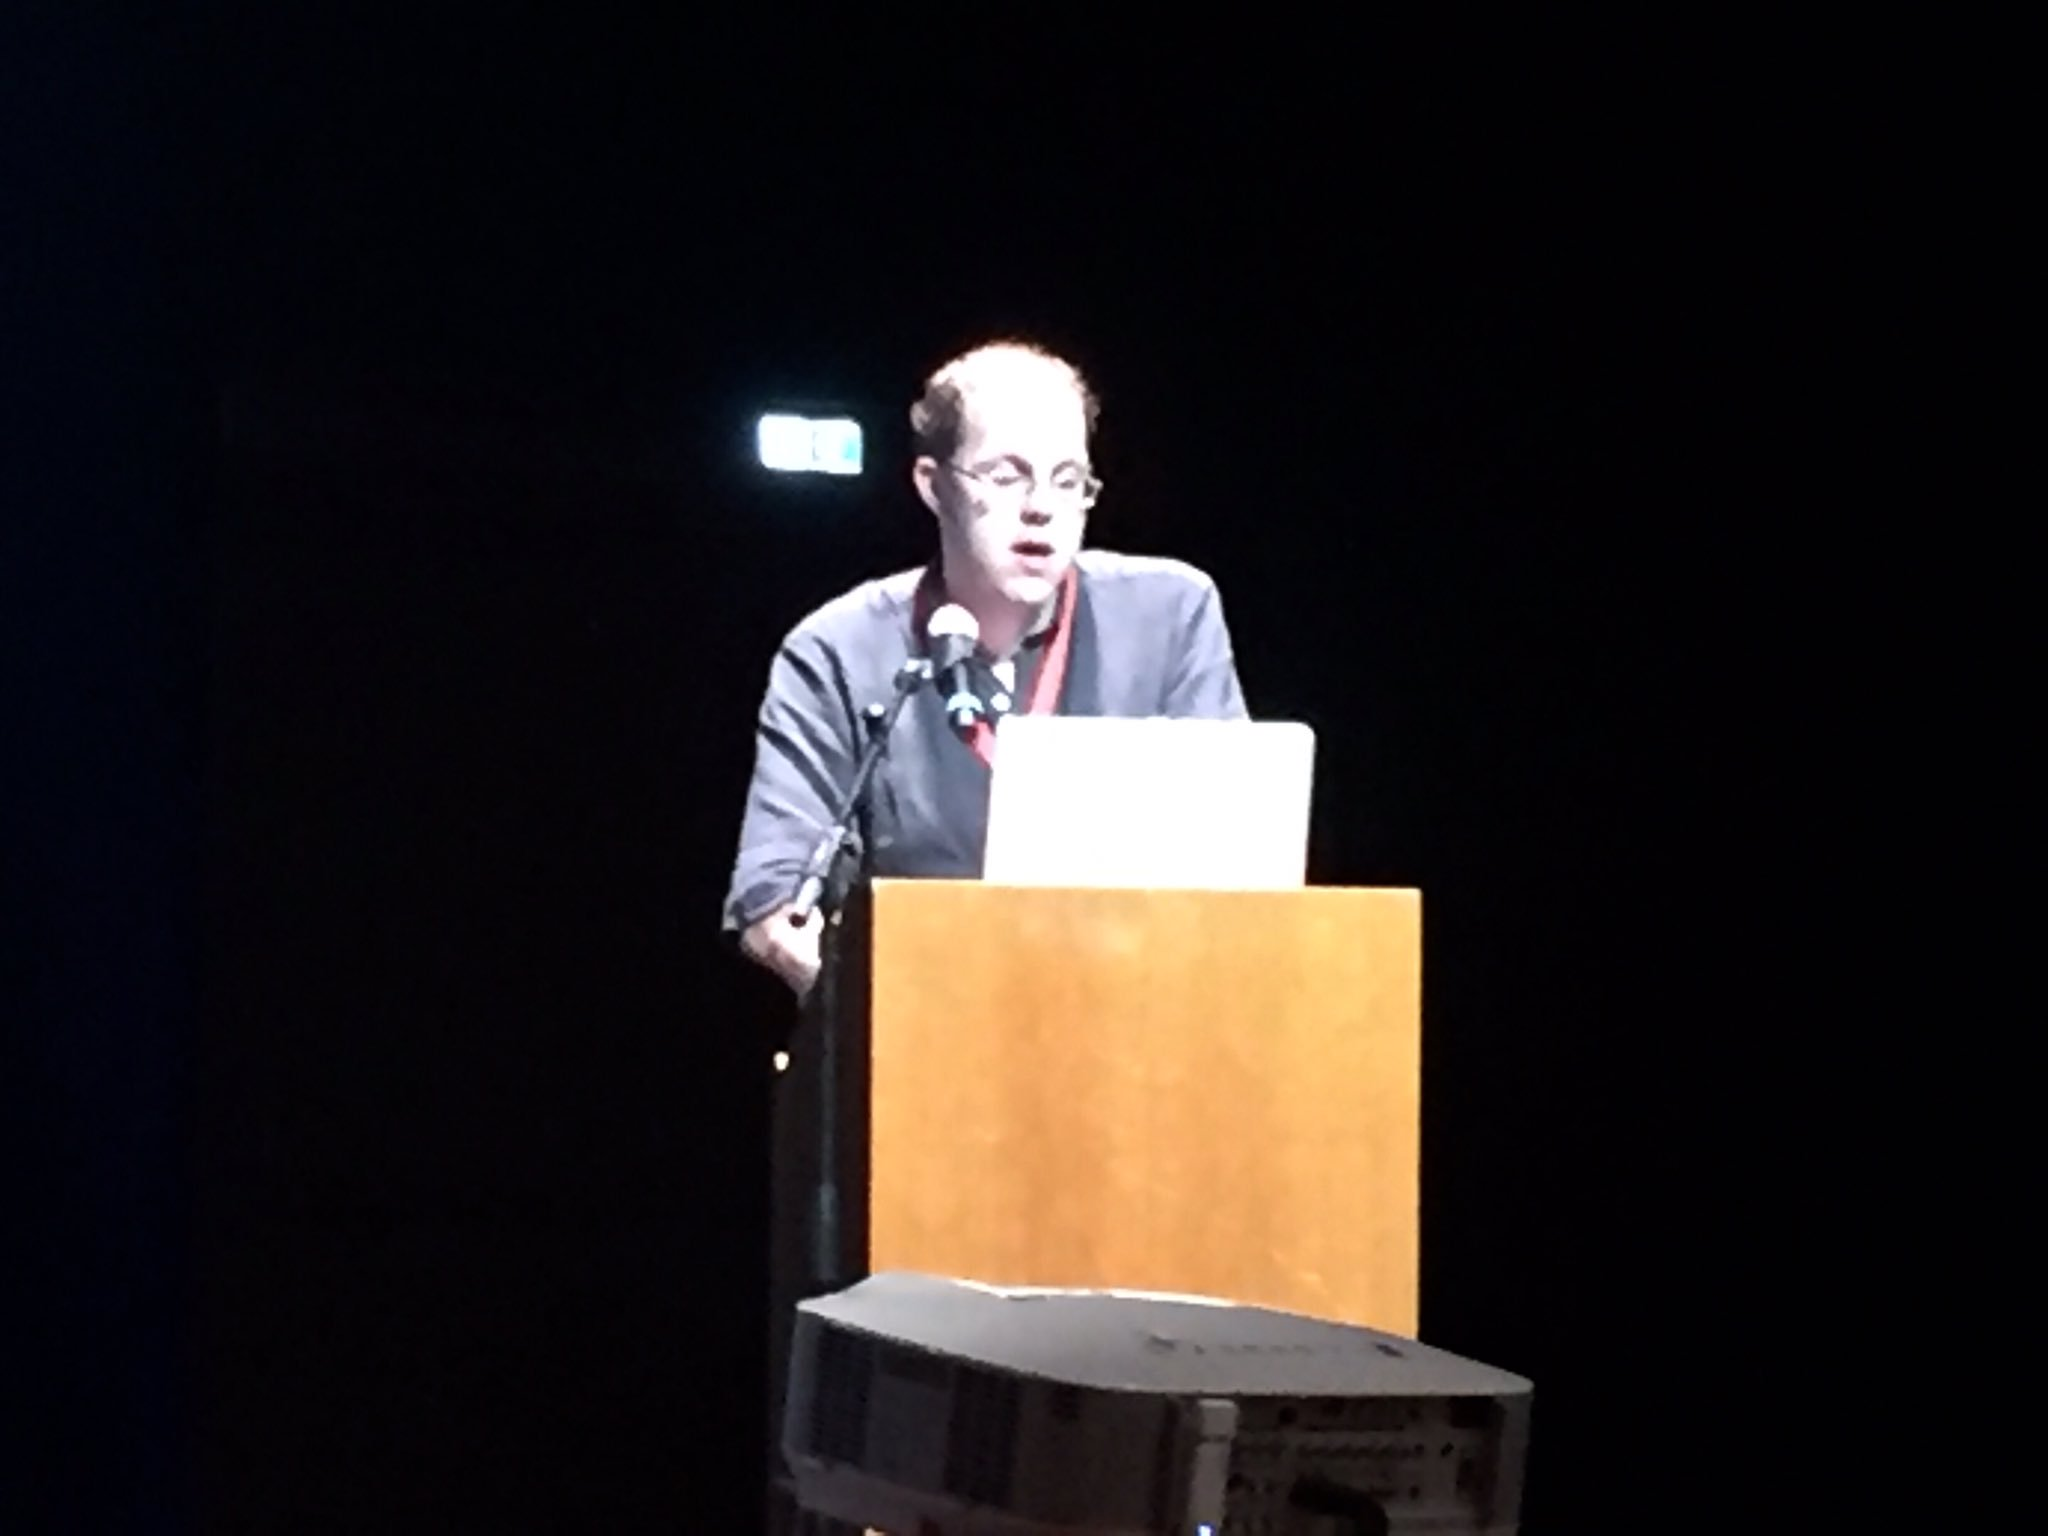 Benjamin Knysak delivering the citation for H. Robert Cohen, honorary member of IAML #iaml2016 https://t.co/RIxsjdqyFE